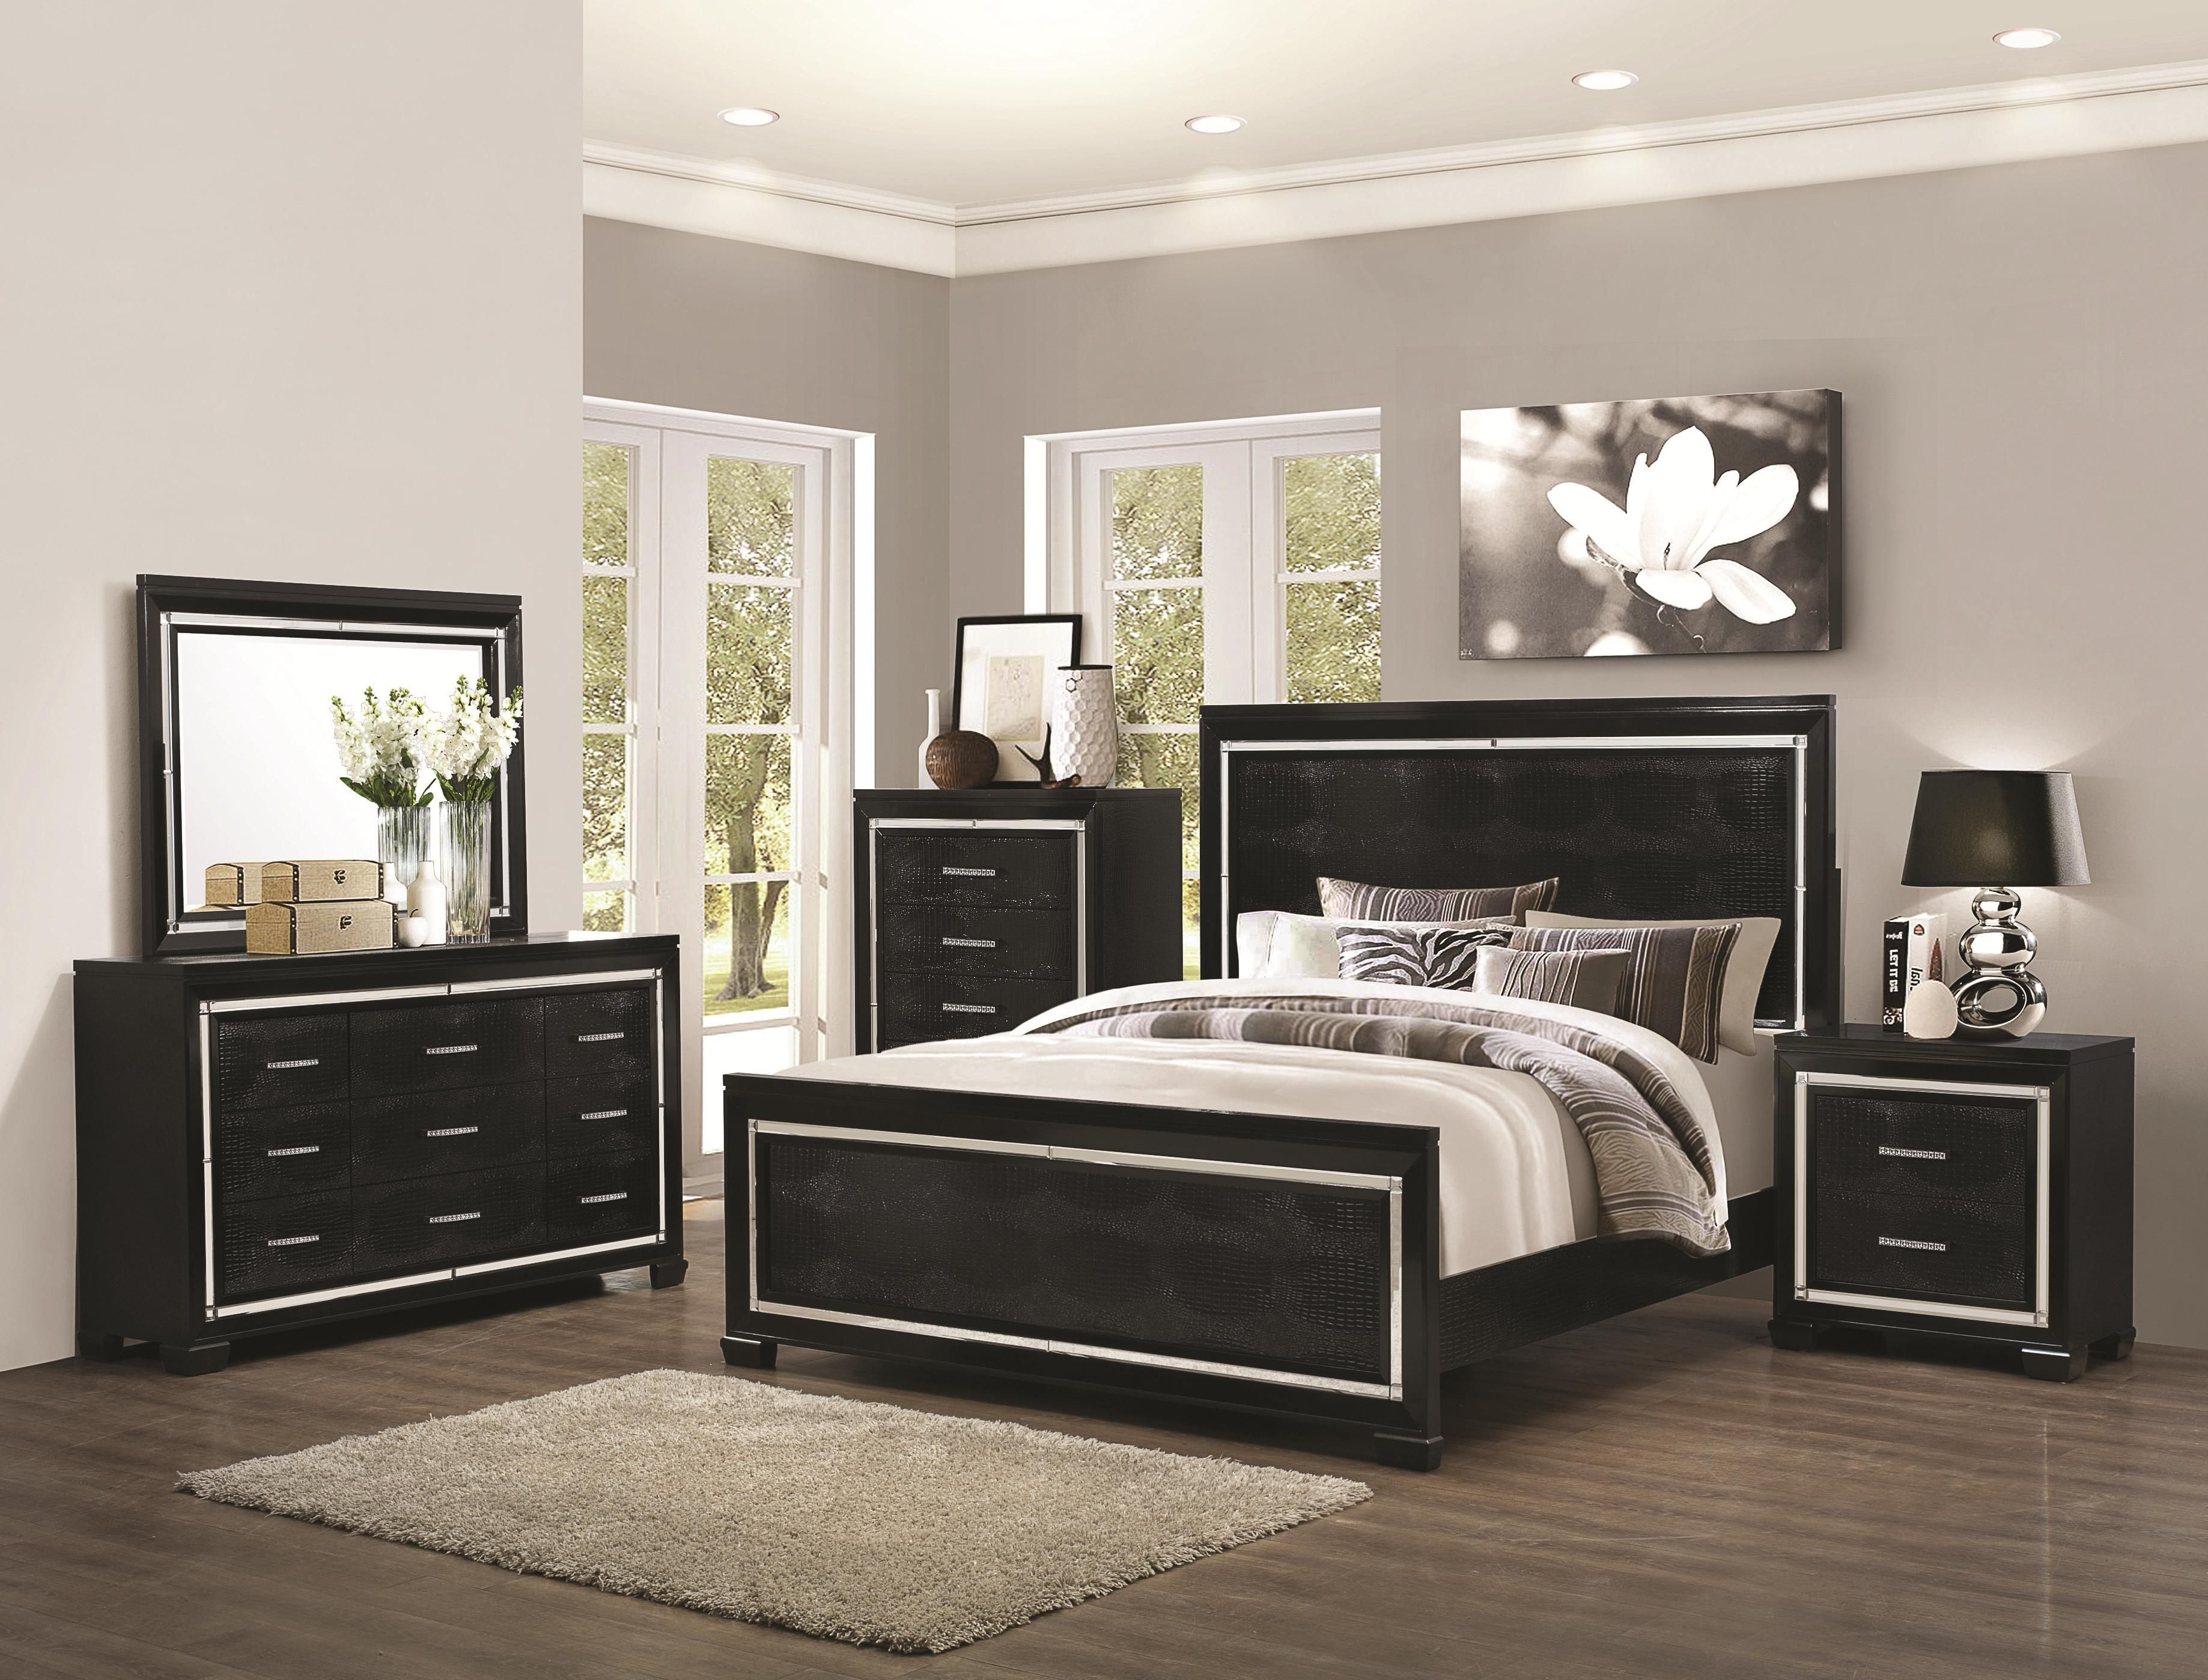 bedroom furniture dallas - King Bedroom Sets Dallas